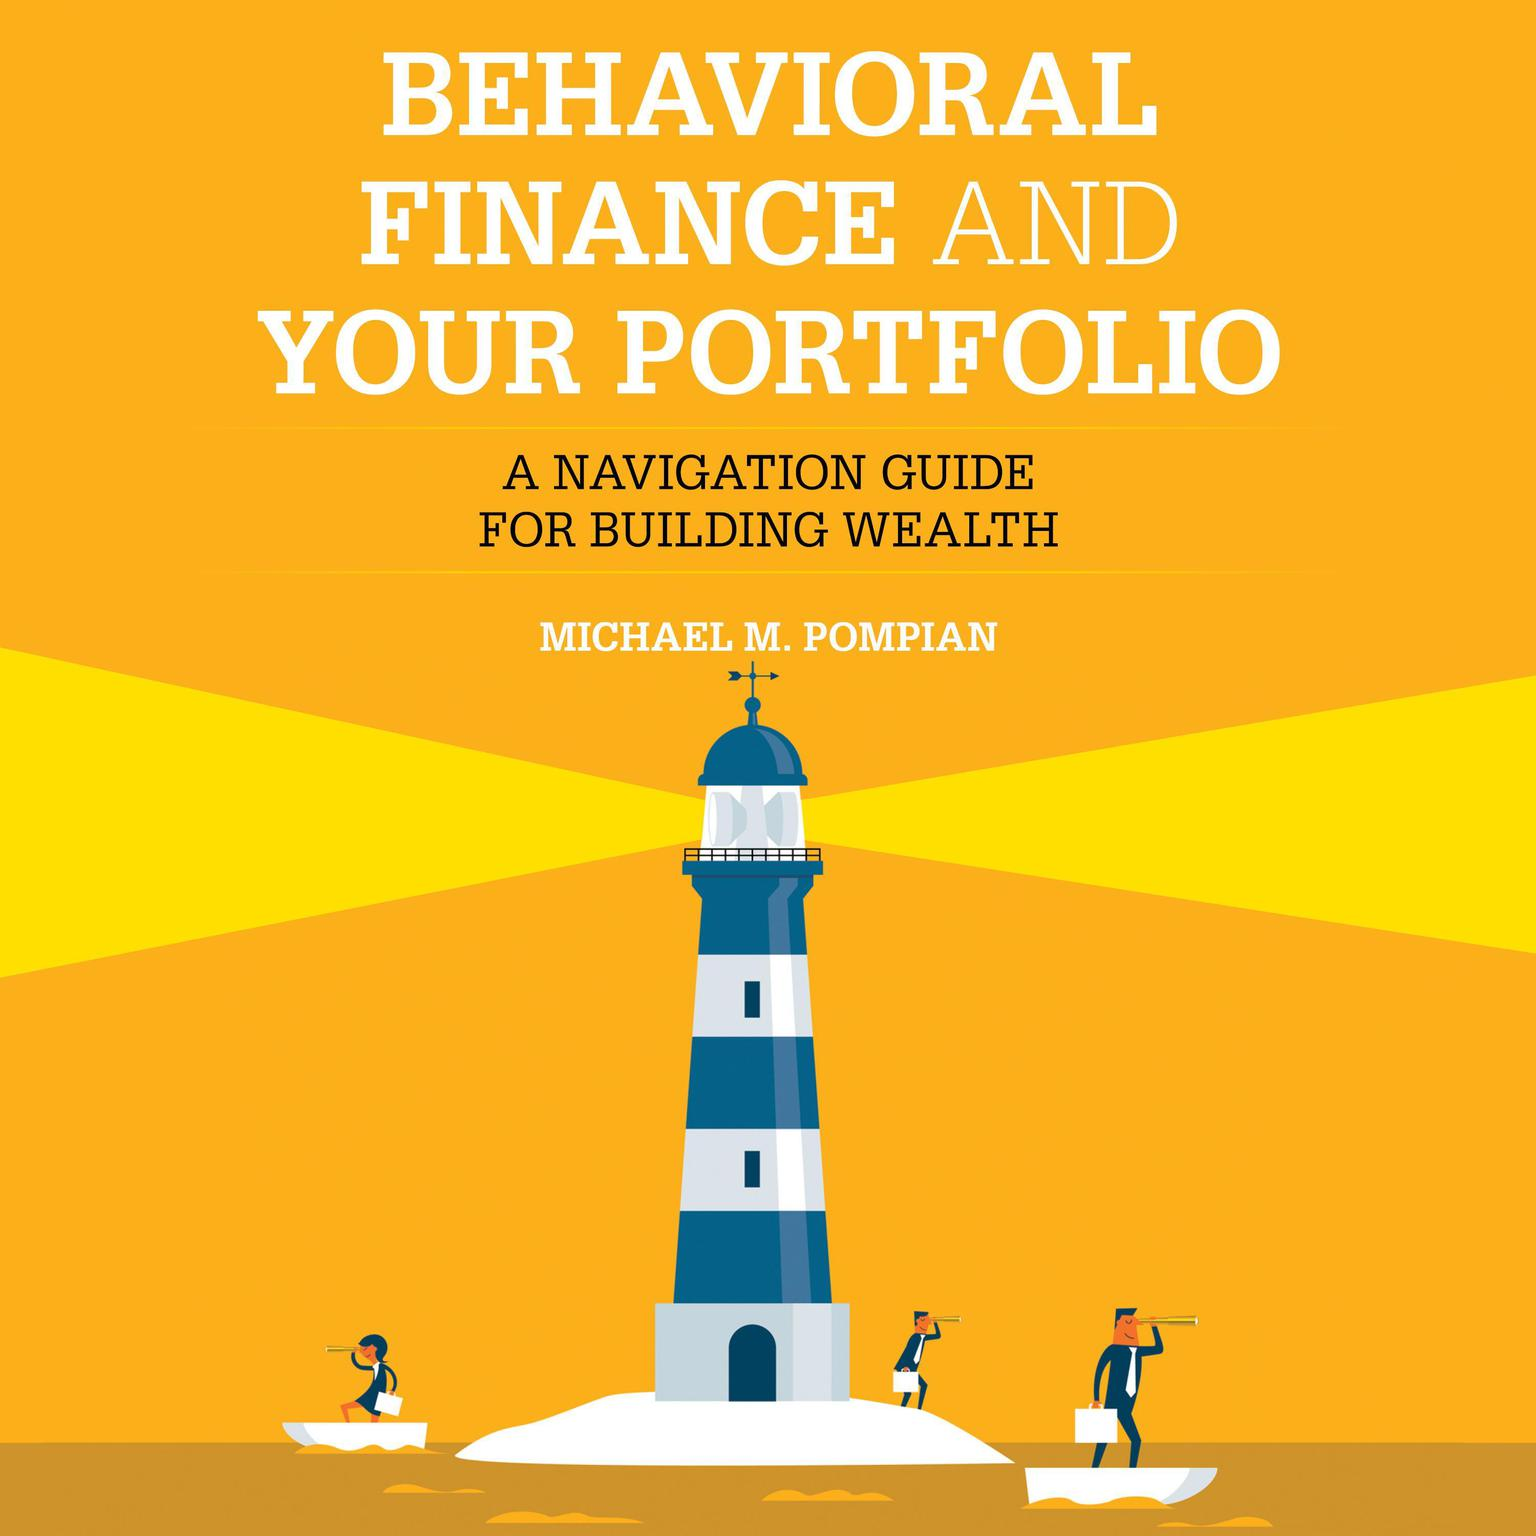 Behavioral Finance and Your Portfolio: A Navigation Guide for Building Wealth (2nd Edition) Audiobook, by Michael M. Pompian